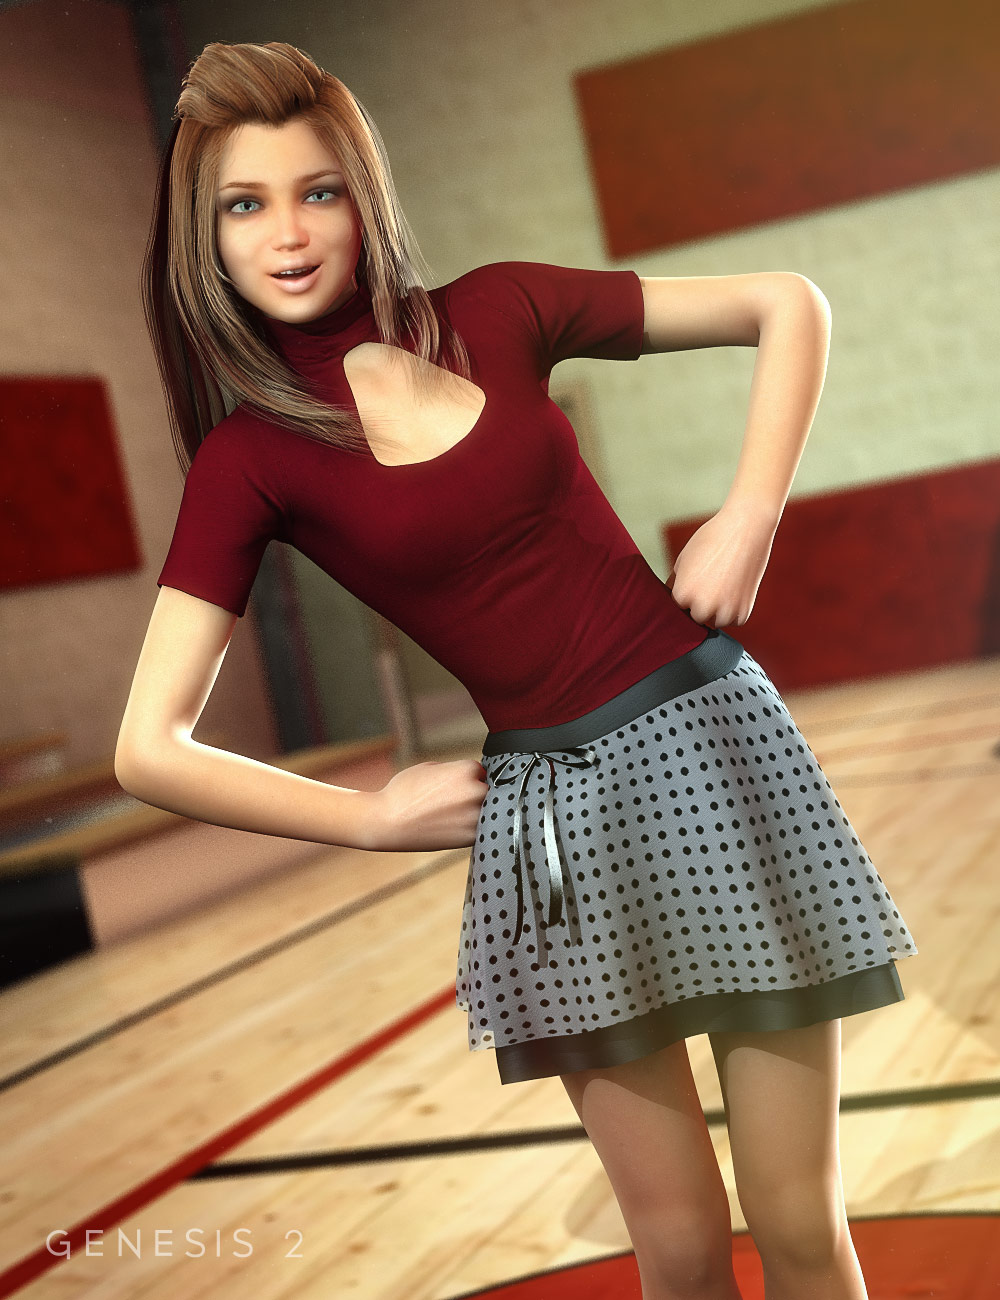 Ladybug Outfit for Genesis 2 Female(s) by: Ryverthorn, 3D Models by Daz 3D